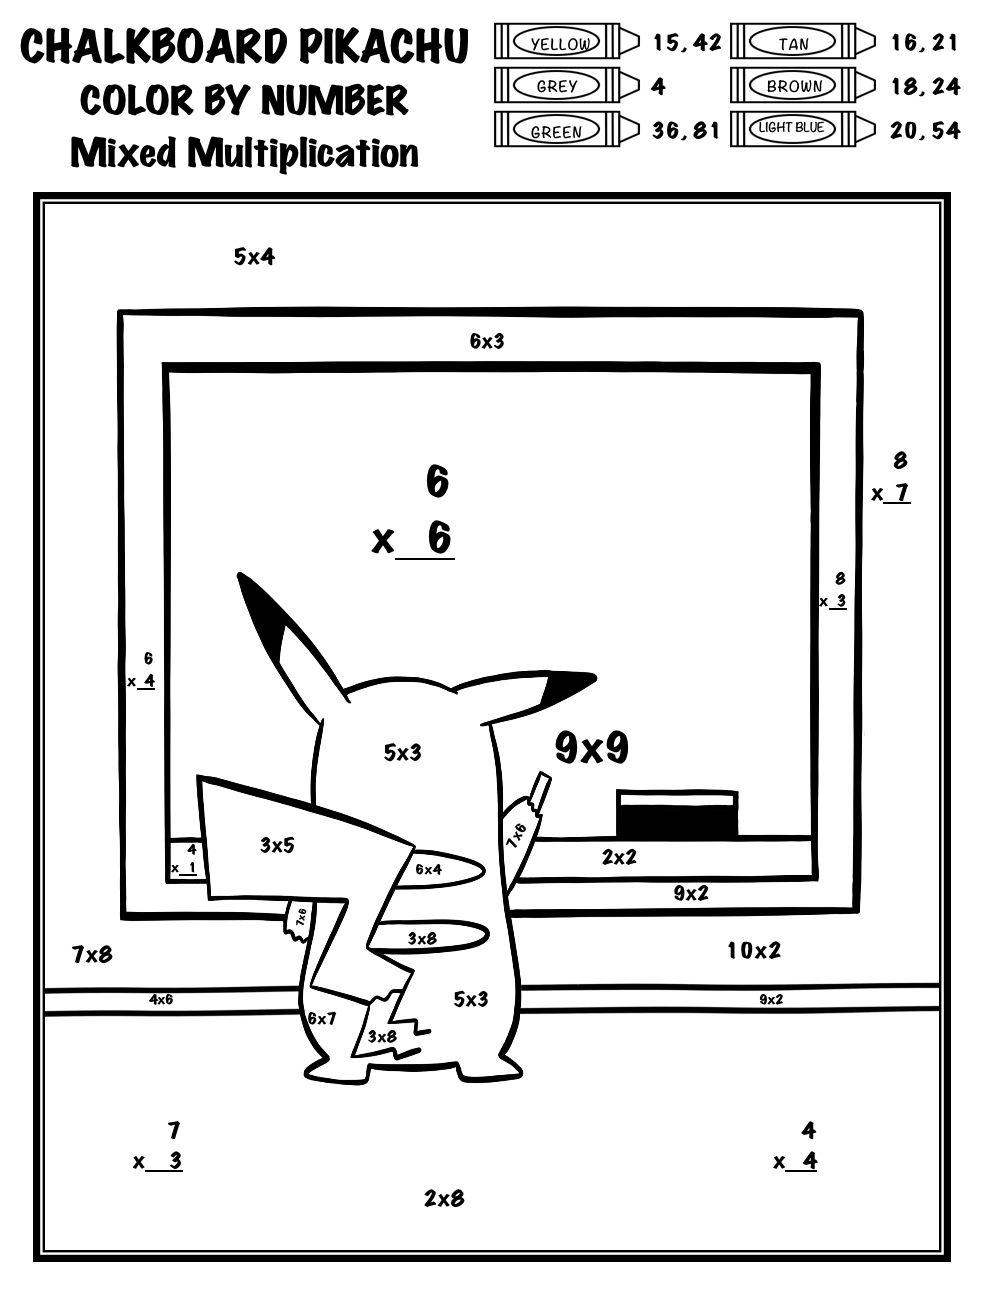 Pokemon Color By Number Add Subtract Multiply Divide Chalkboard Pikachu Math Activities Elementary Pokemon Coloring Pages Math Pages